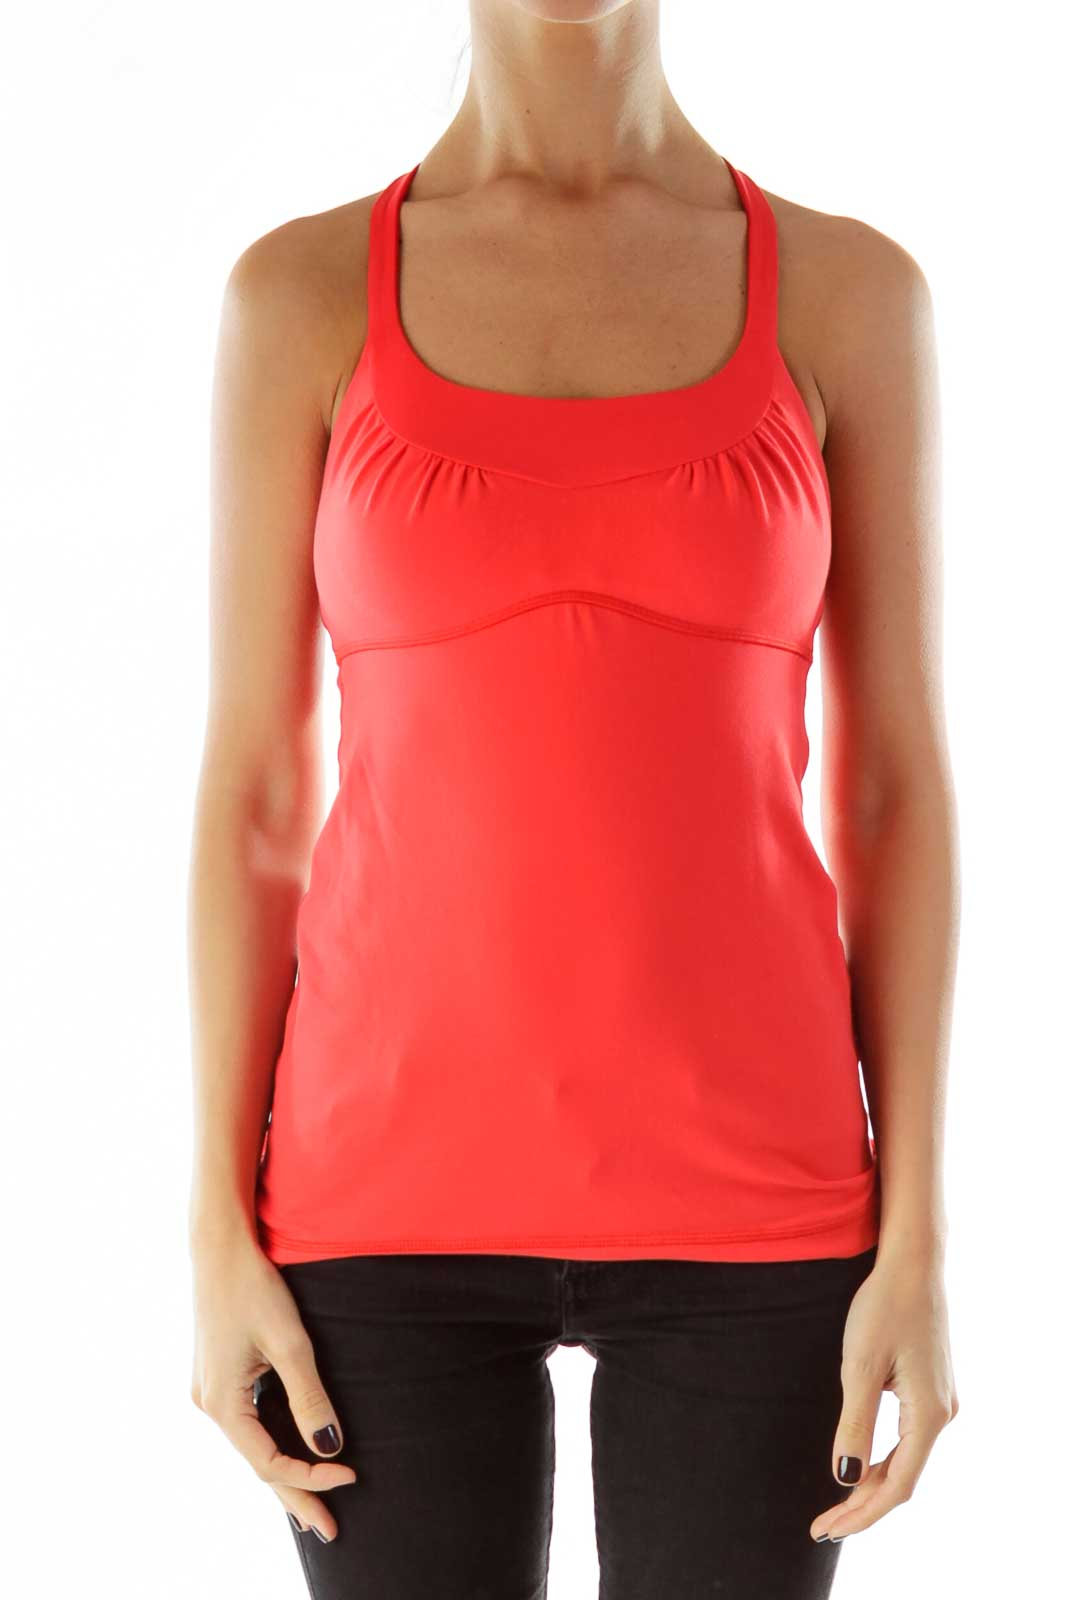 Pink Strapped Sports Top